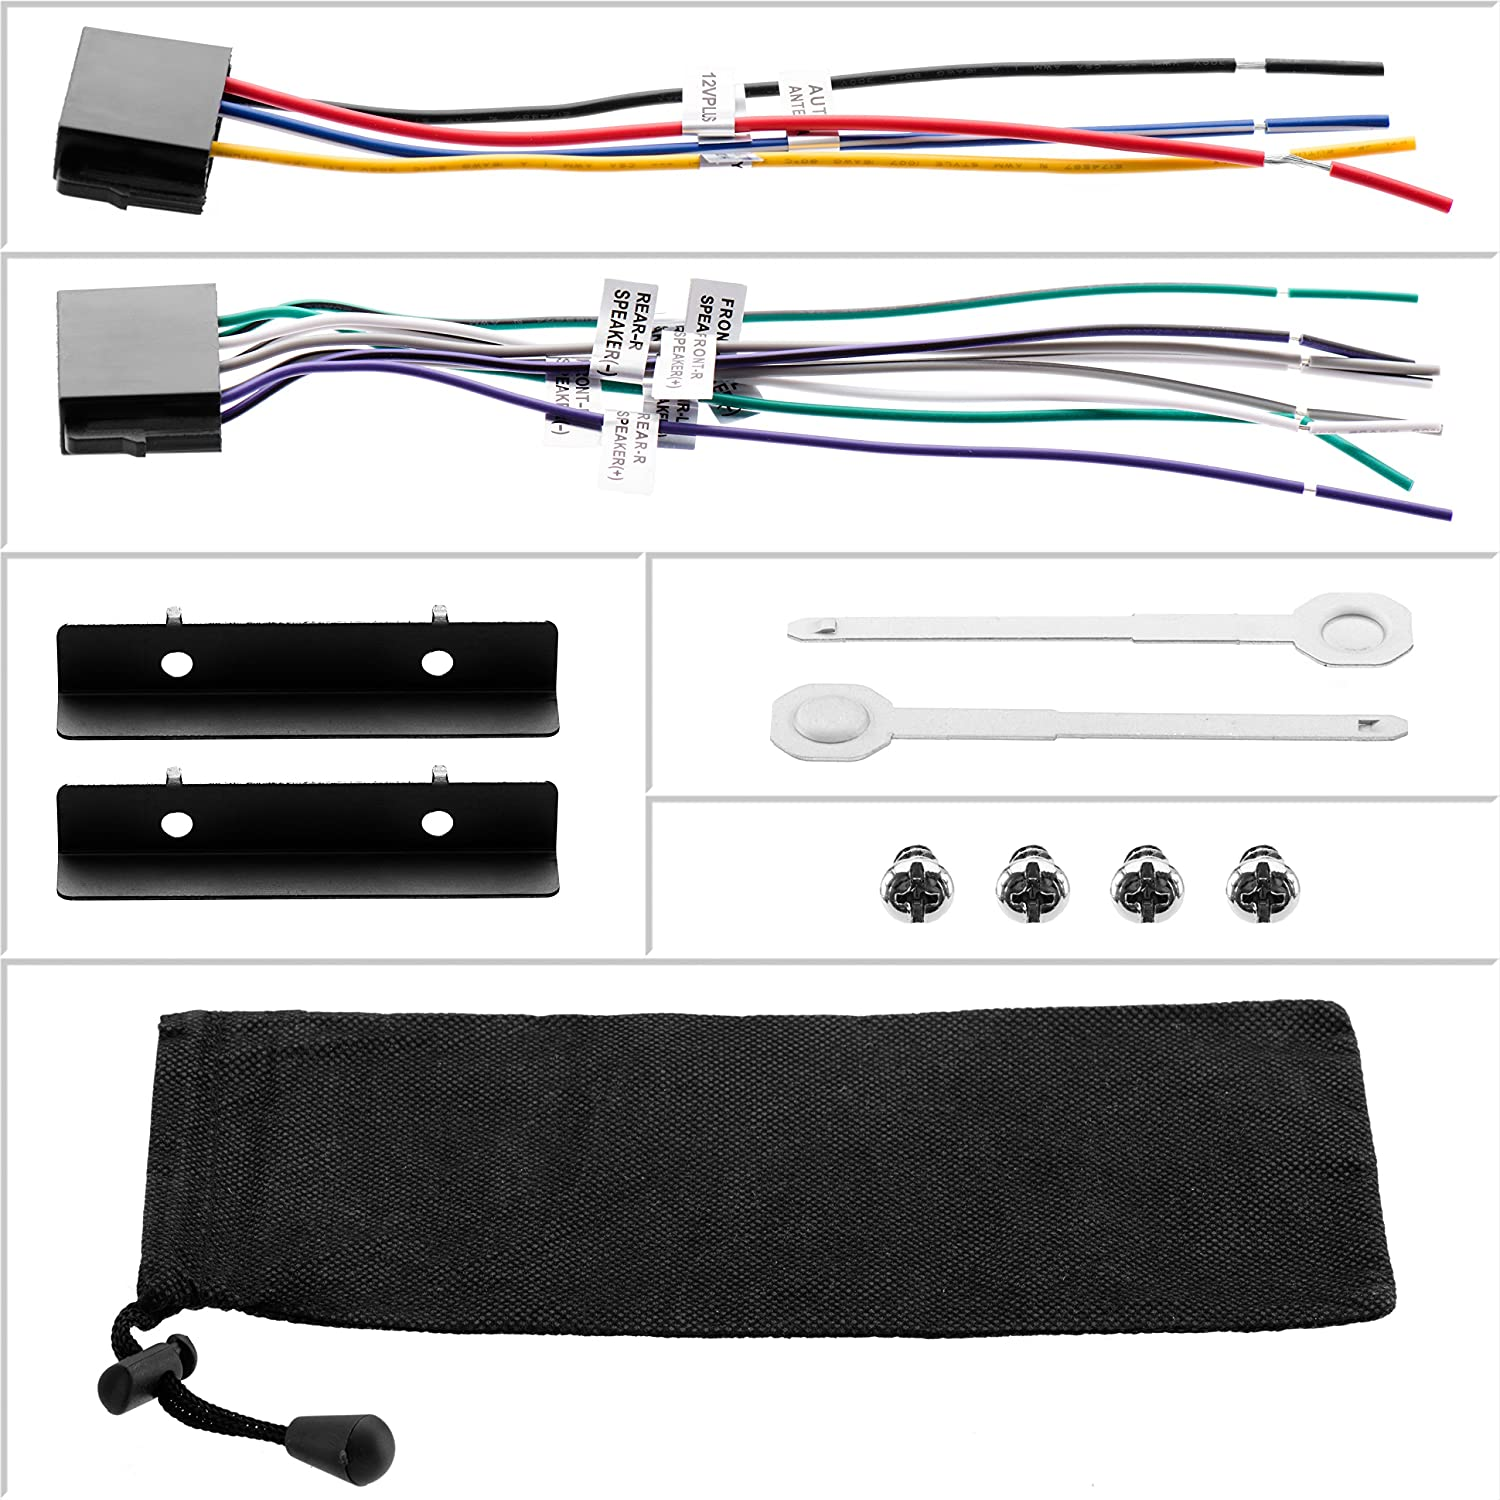 Boss Audio 812uab Double Din Mech Less No Cd Or Dvd 1761 Radio Wiring Harness For Toyota 87up Power 4 Speaker Shopstak Player Receiver Bluetooth Detachable Front Panel Wireless Remote Car Electronics